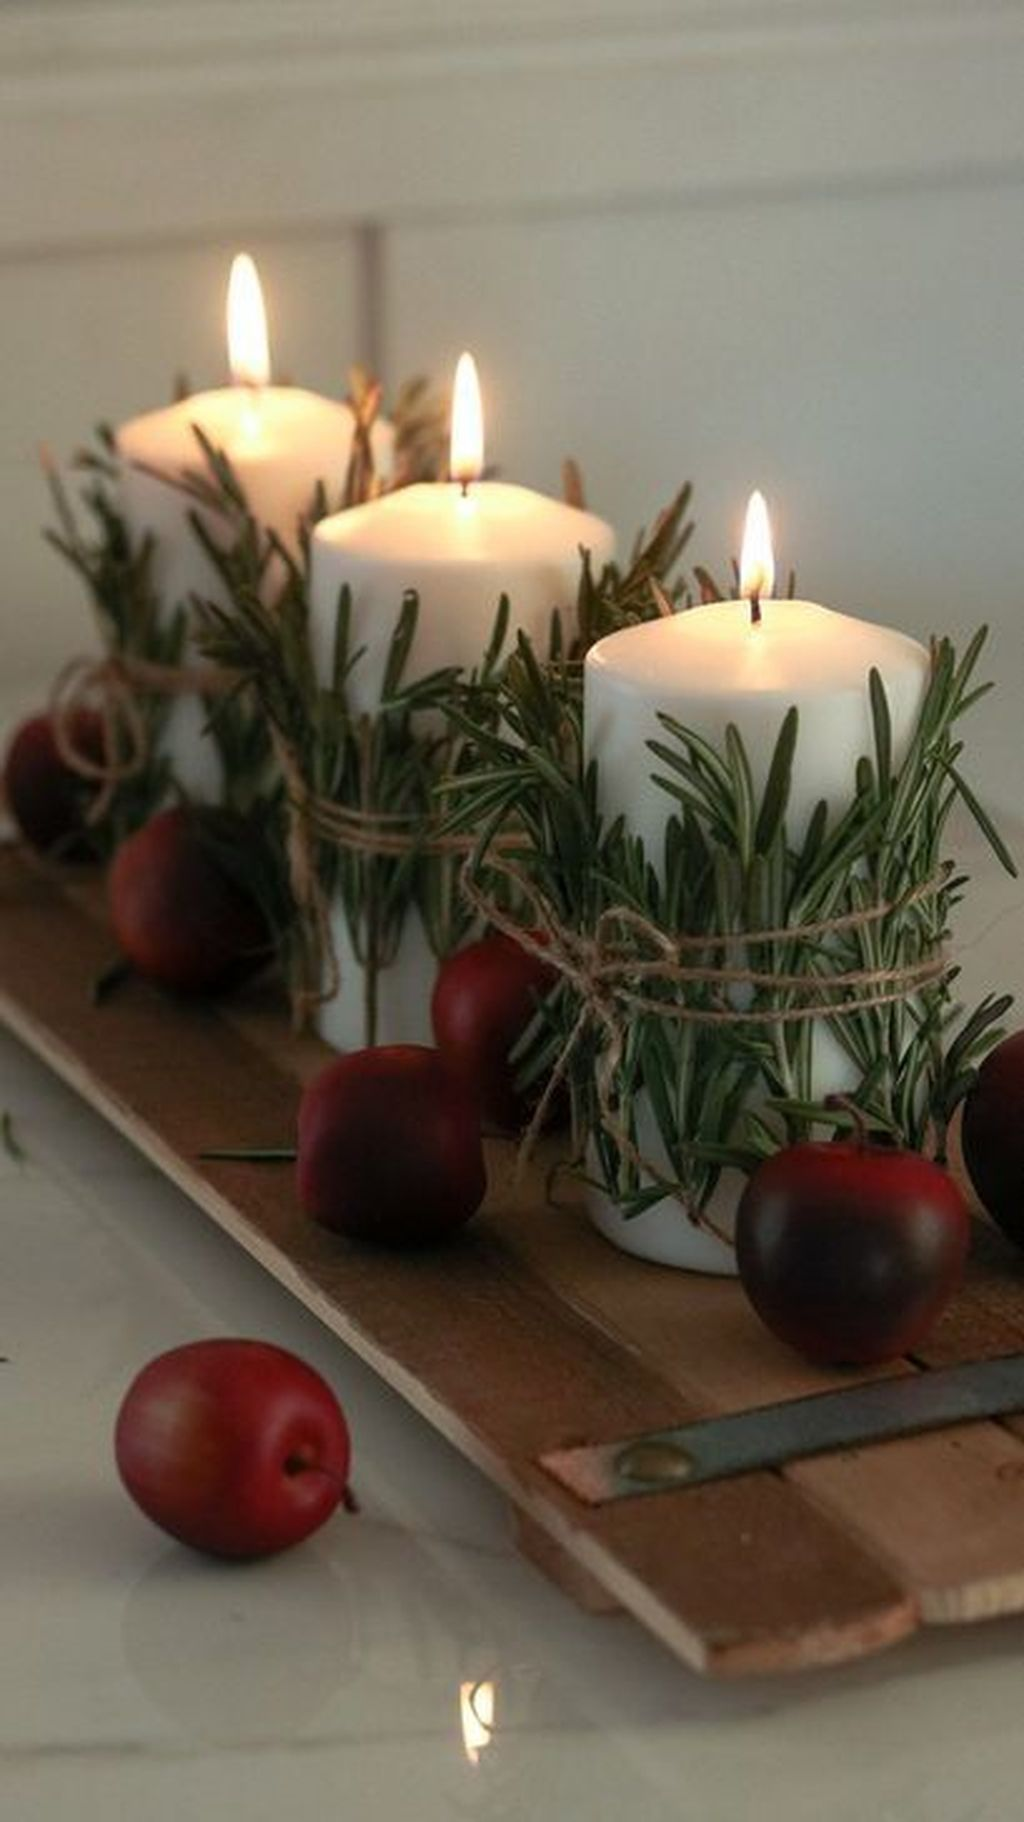 Winter Table Decorations You Need to Try #xmastabledecorations